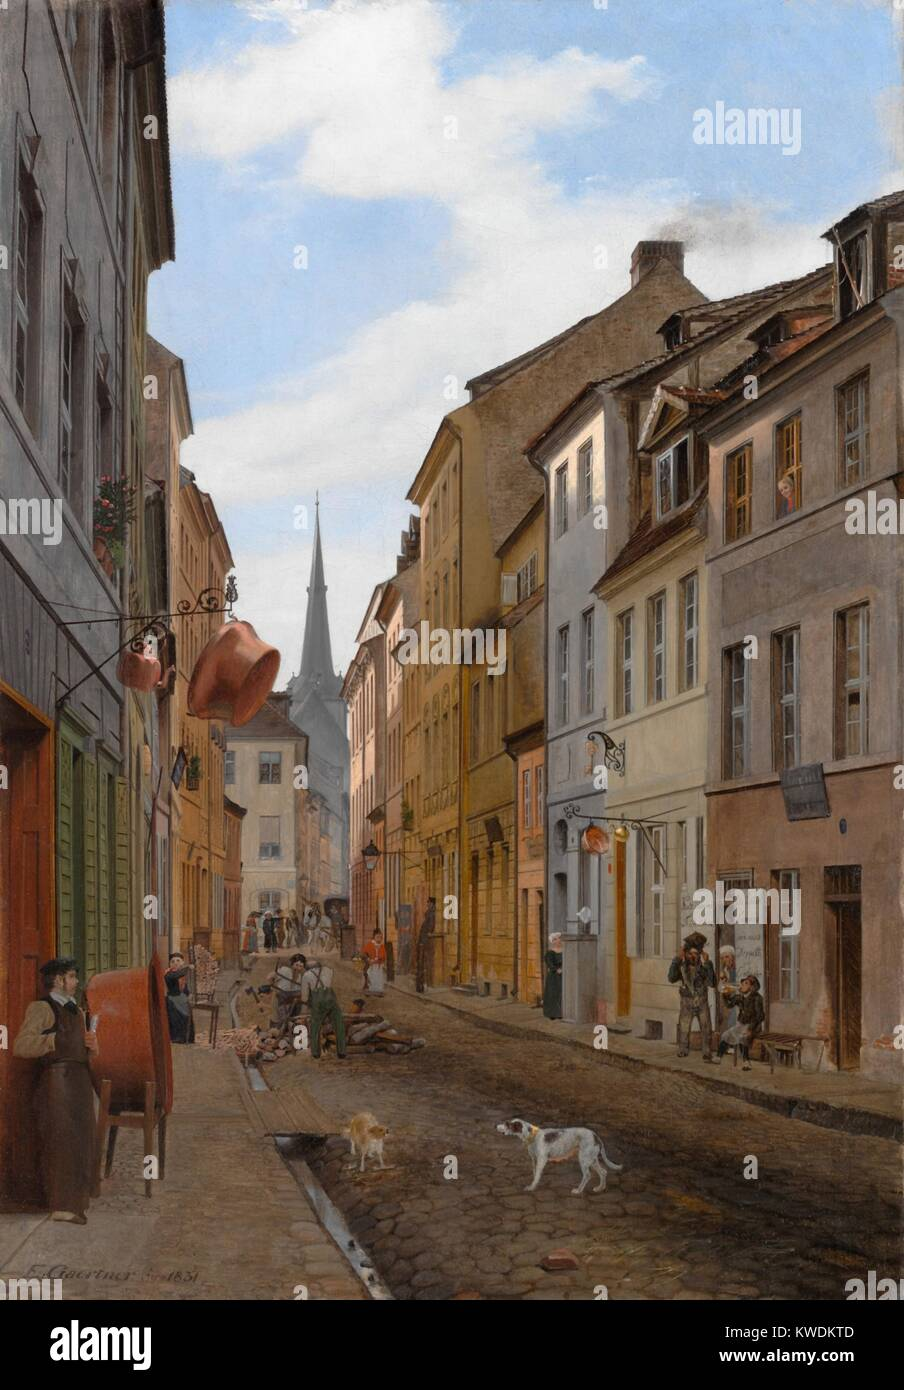 PAROCHIALSTRASSE IN BERLIN, by Eduard Gaertner, 1831, German painting, oil on canvas. Gaertner specialized in architectural - Stock Image